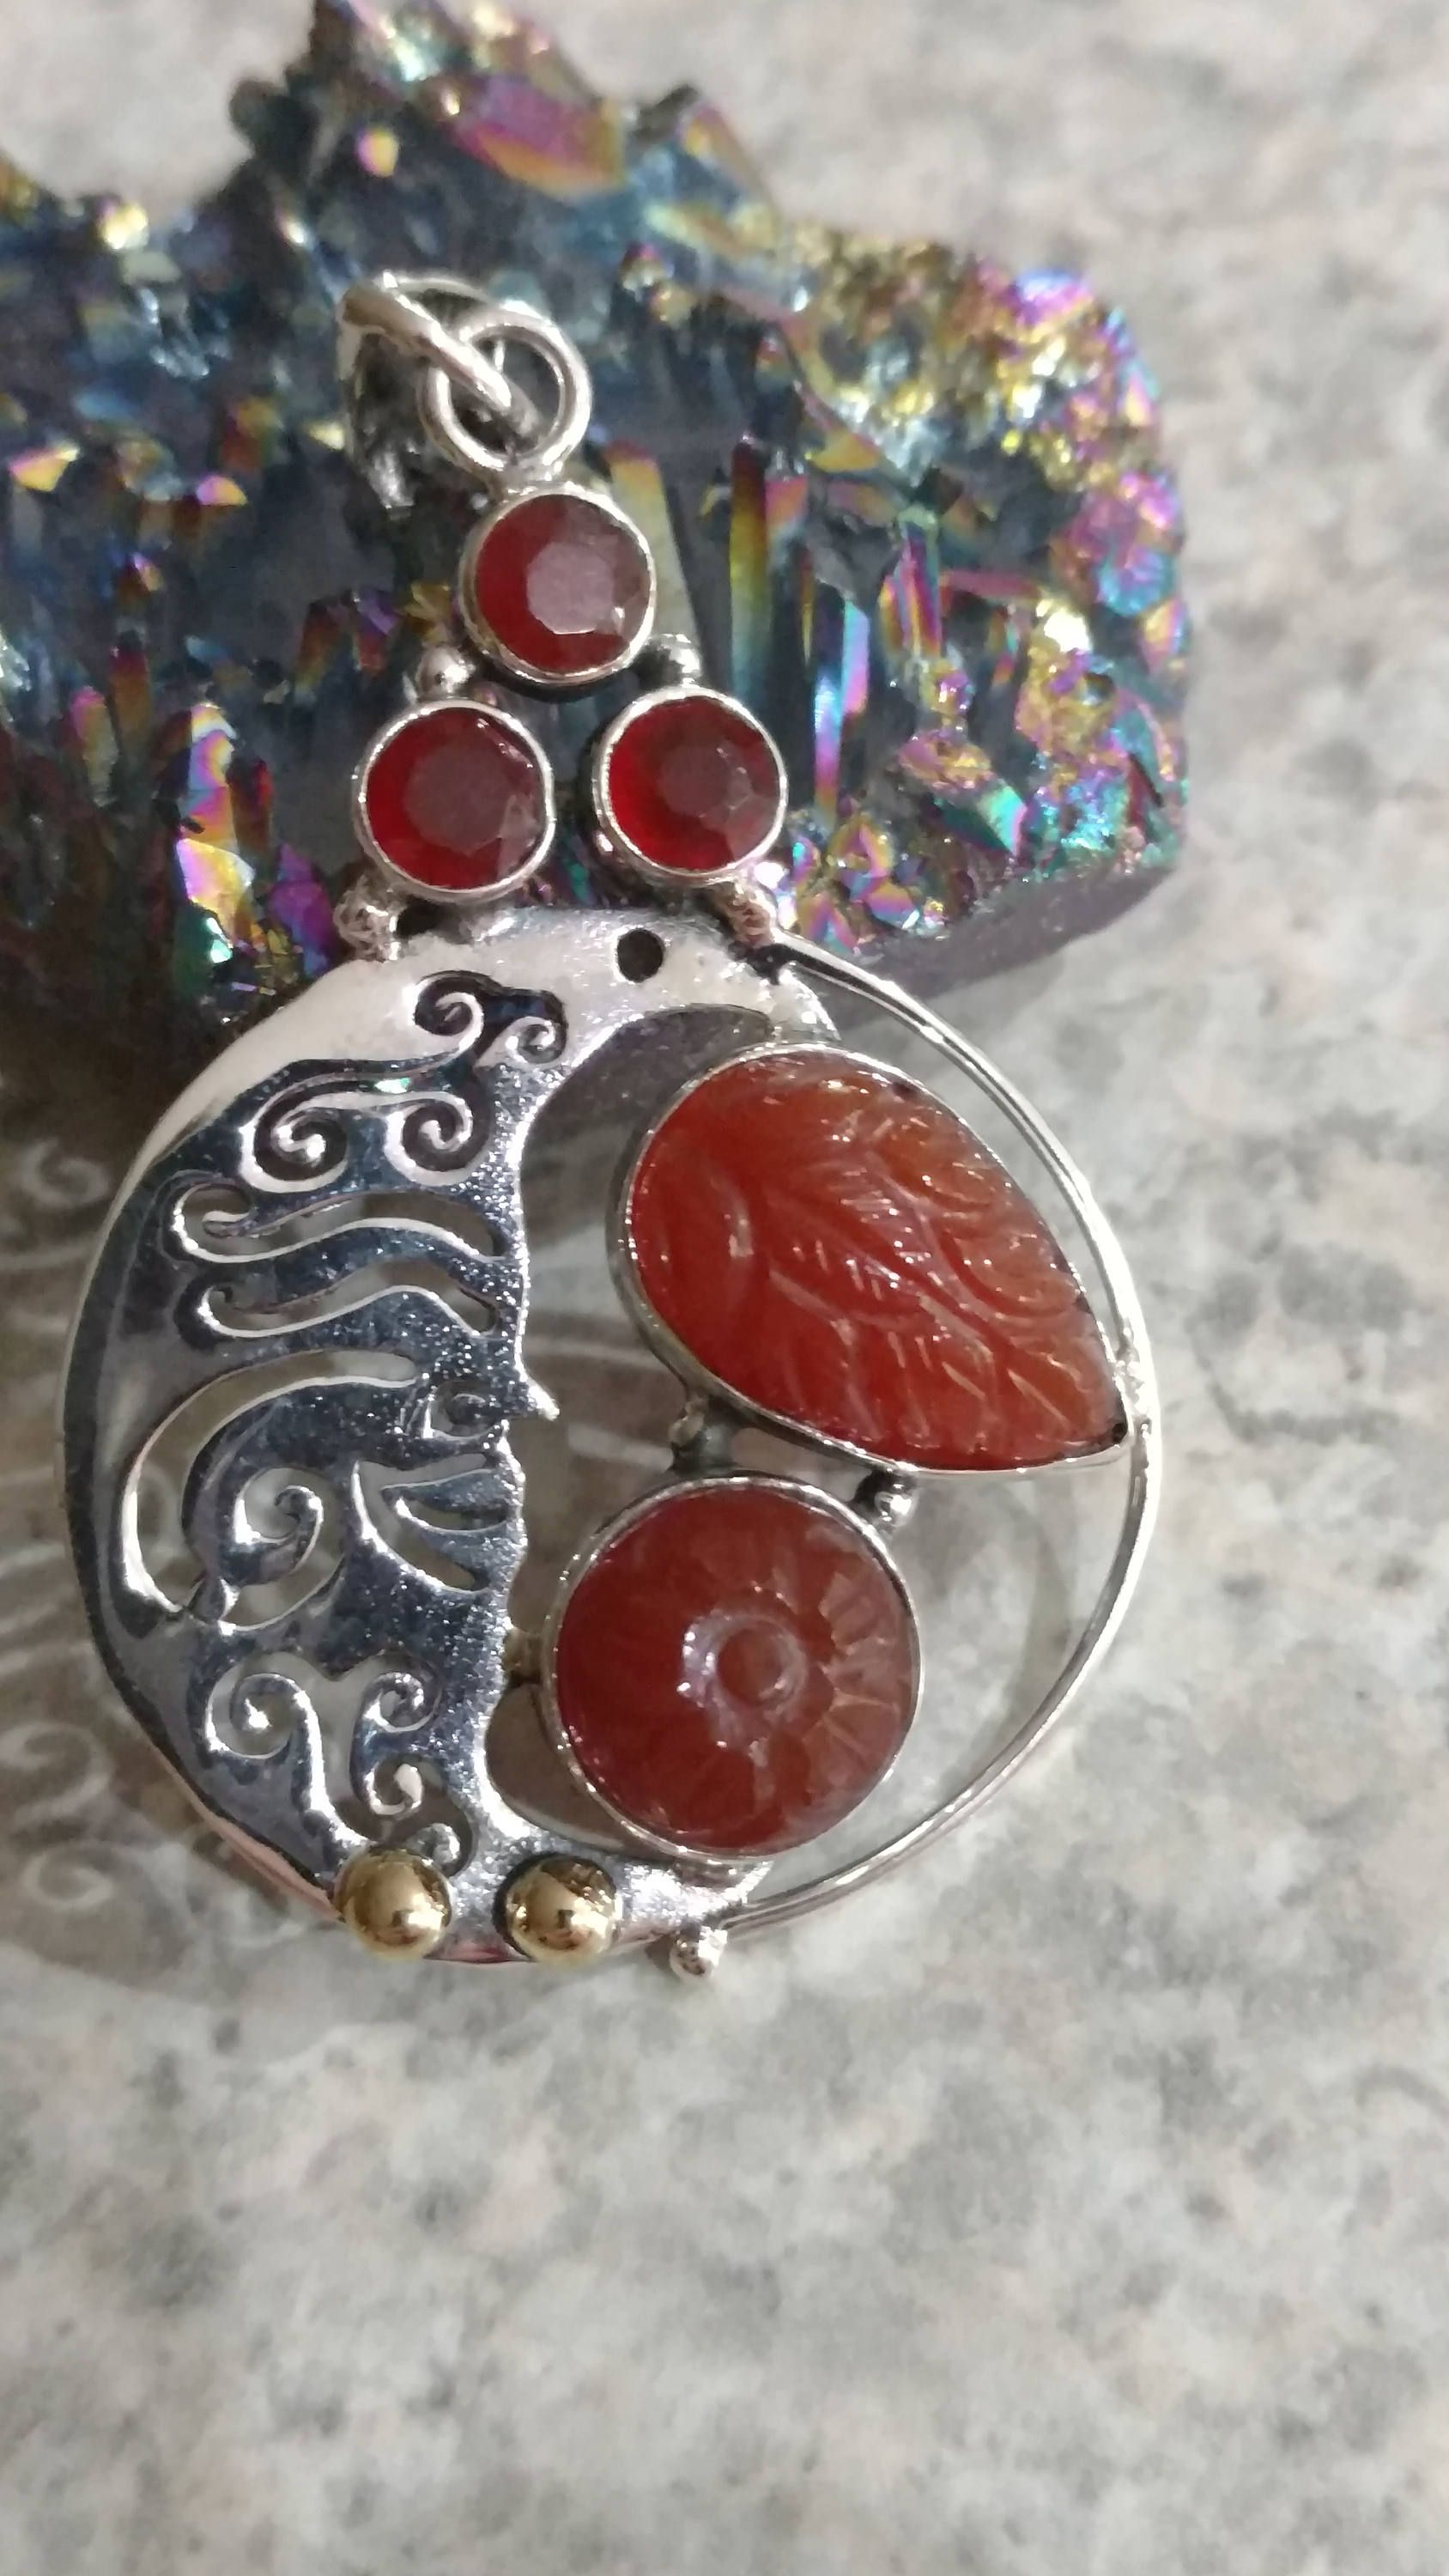 Moon beam carnelian pendant necklace by karinsforgottentreas on etsy moon beam carnelian pendant necklace by karinsforgottentreas on etsy mozeypictures Gallery